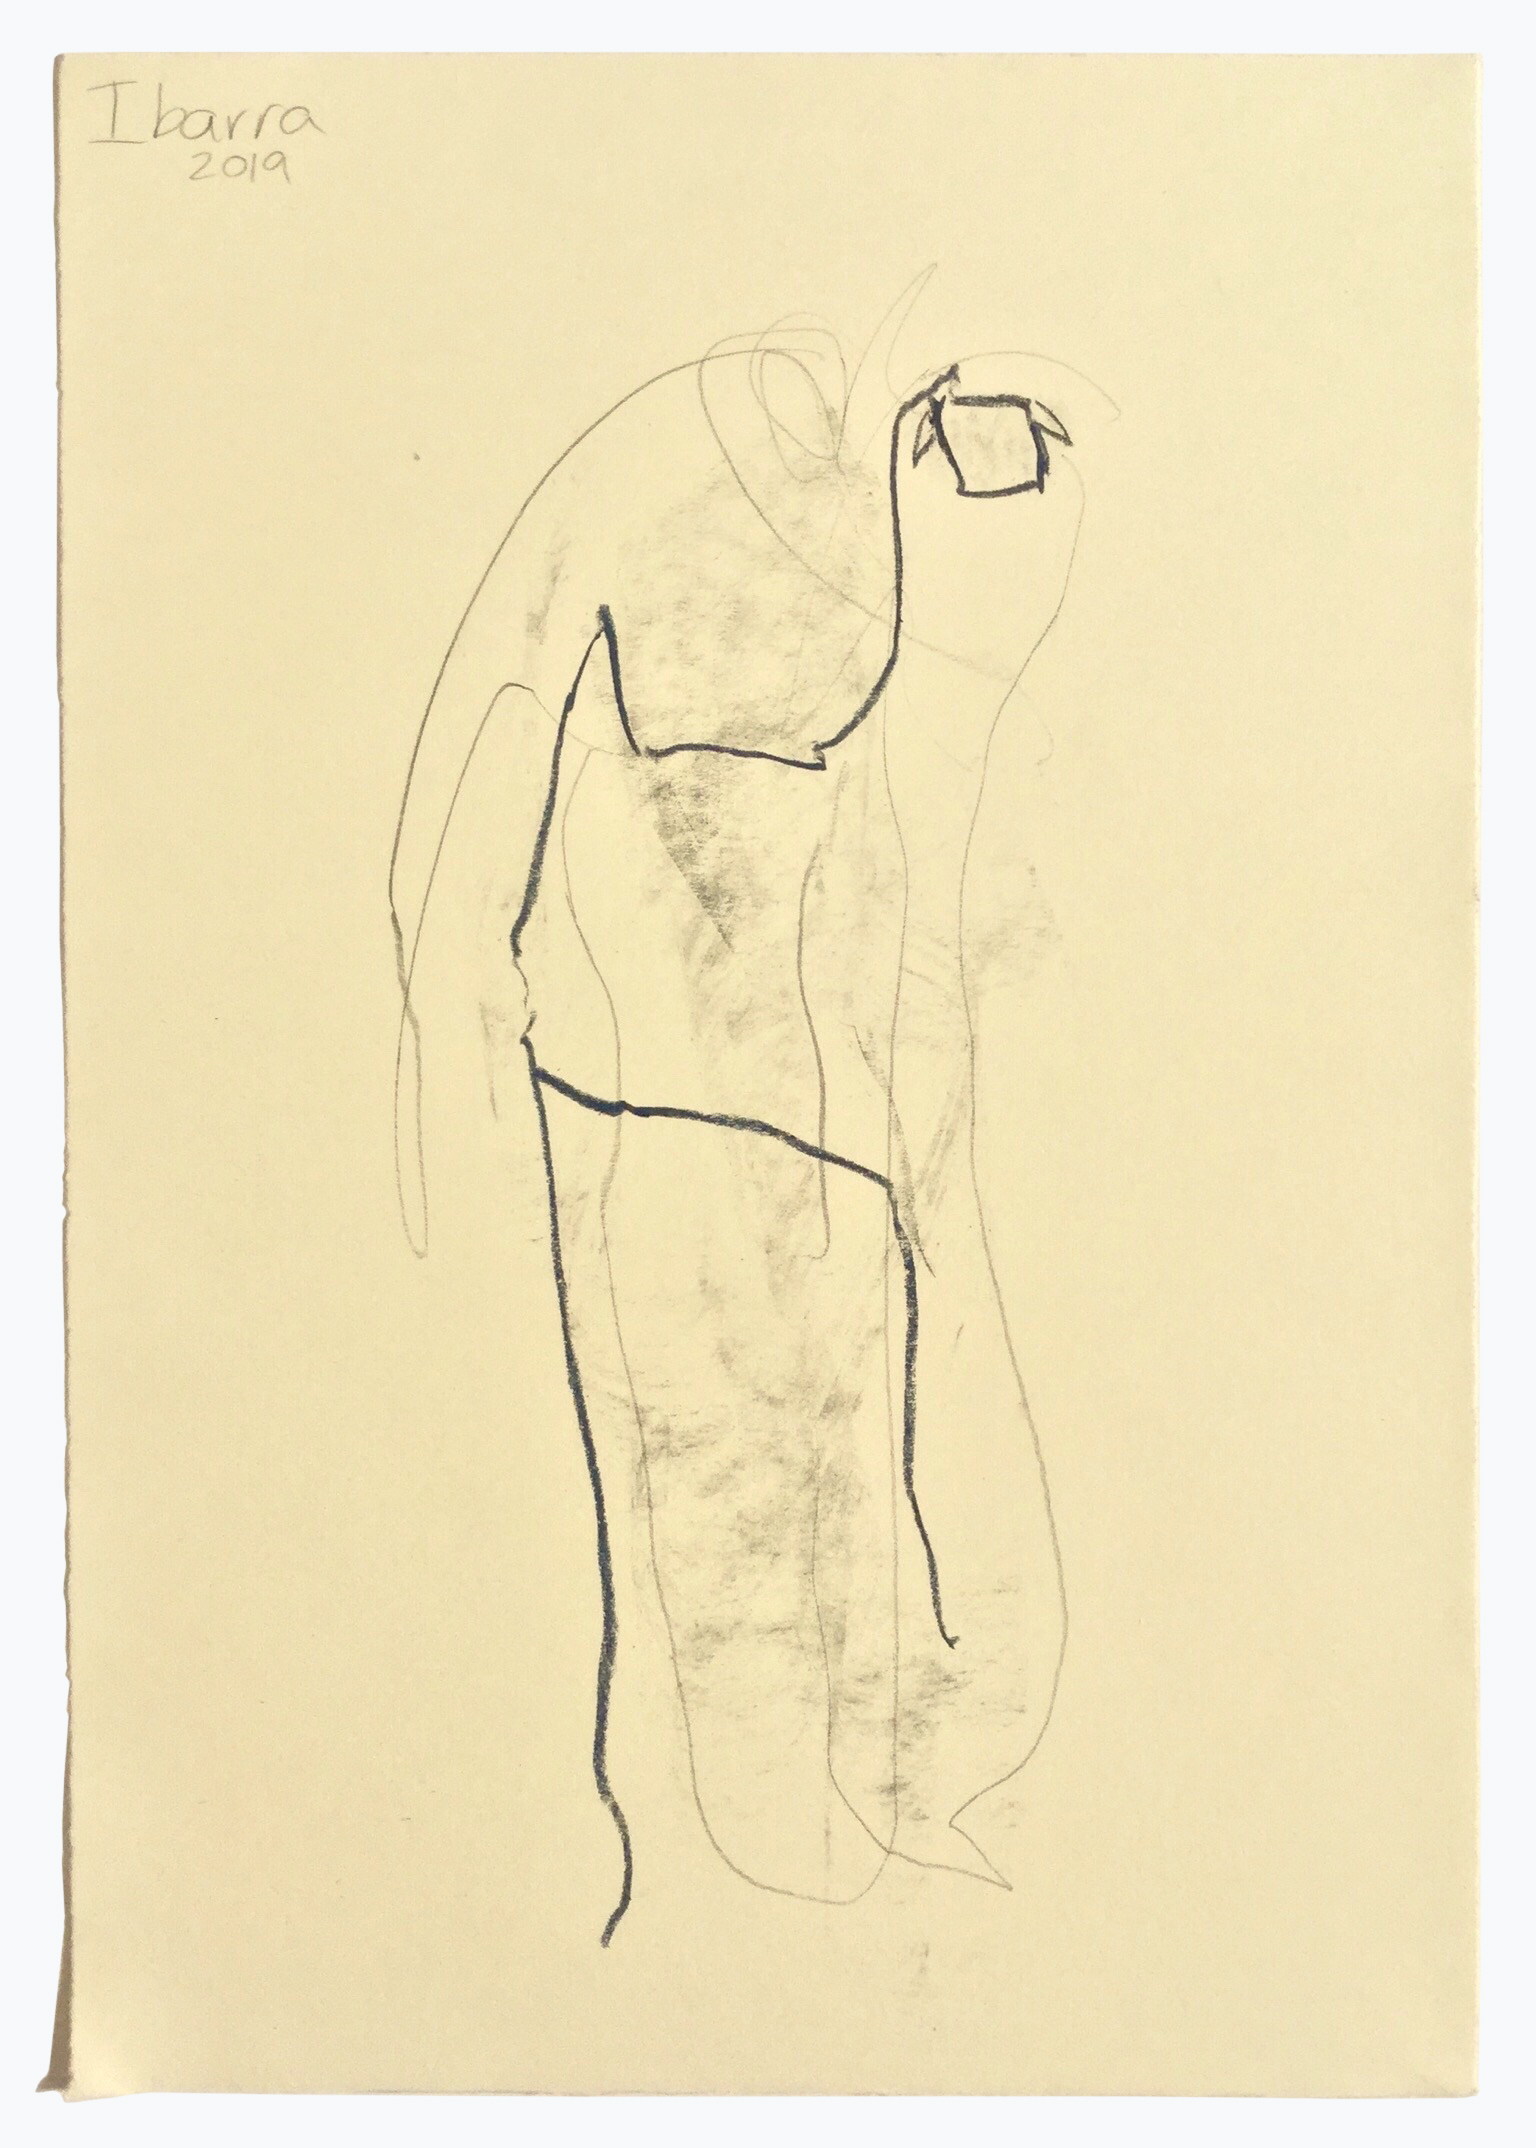 Ibarra_Untitled Stick Figure Graphite and wax pastel on paper-a